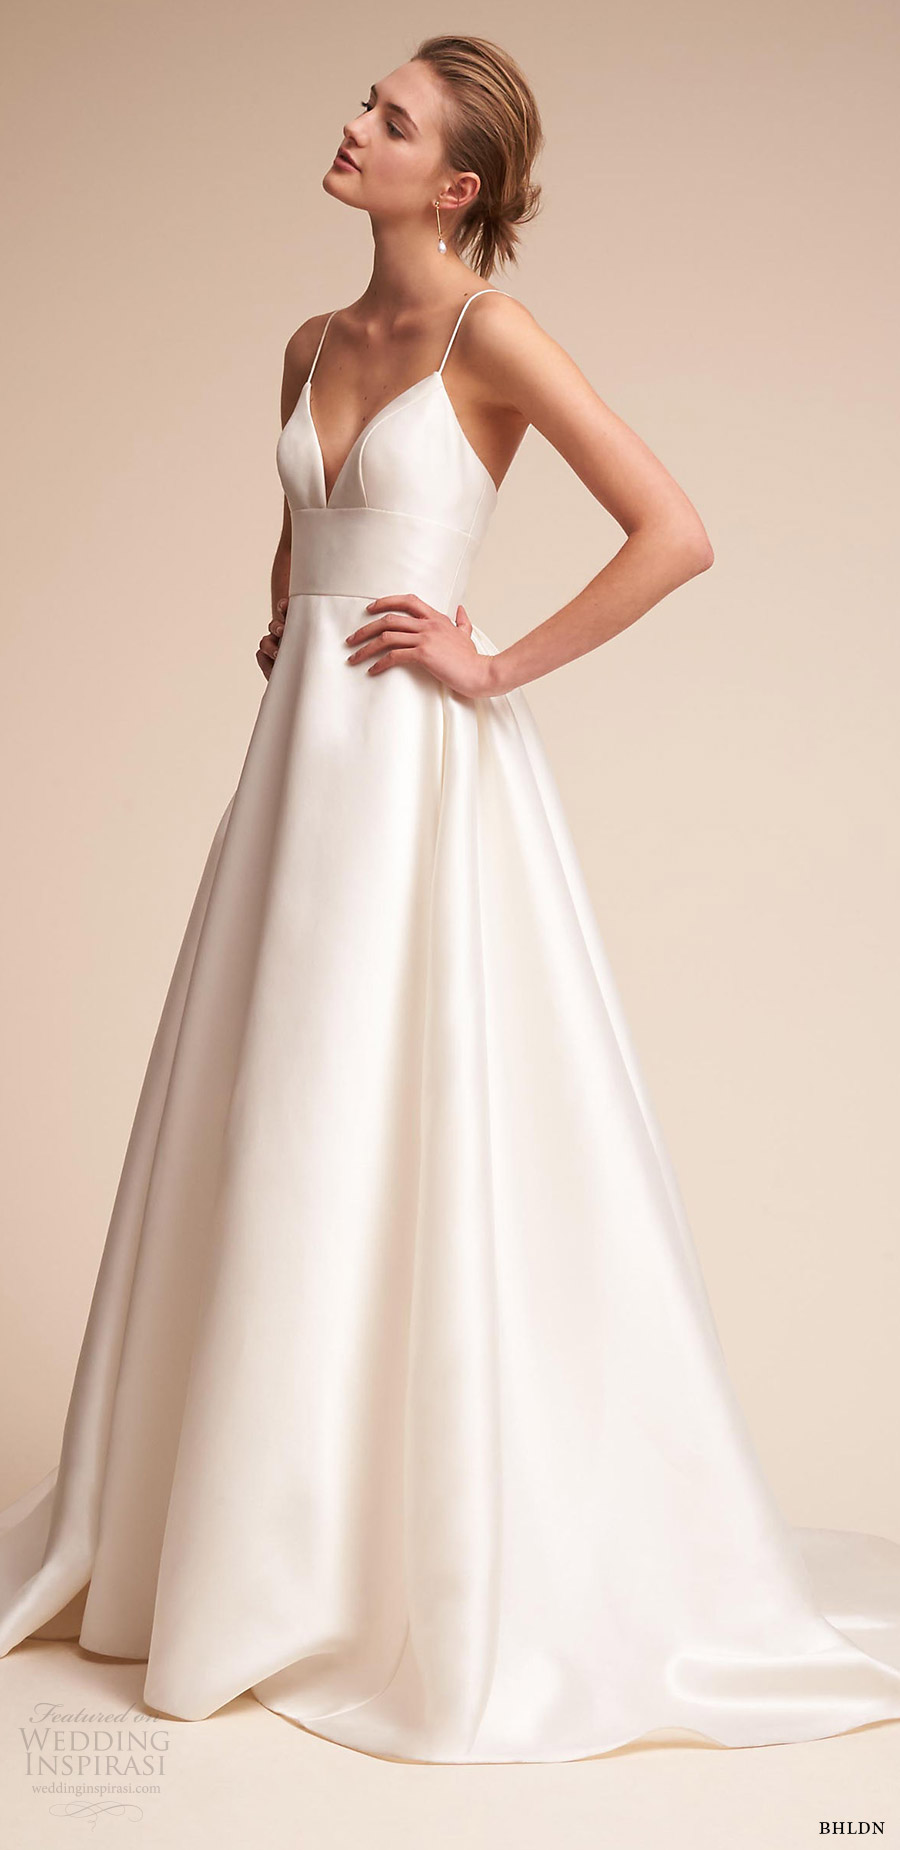 bhldn 2018 bridal trends sleeveless thin straps sweetheart ball gown wedding dress (opal) sv chapel train romantic elegant